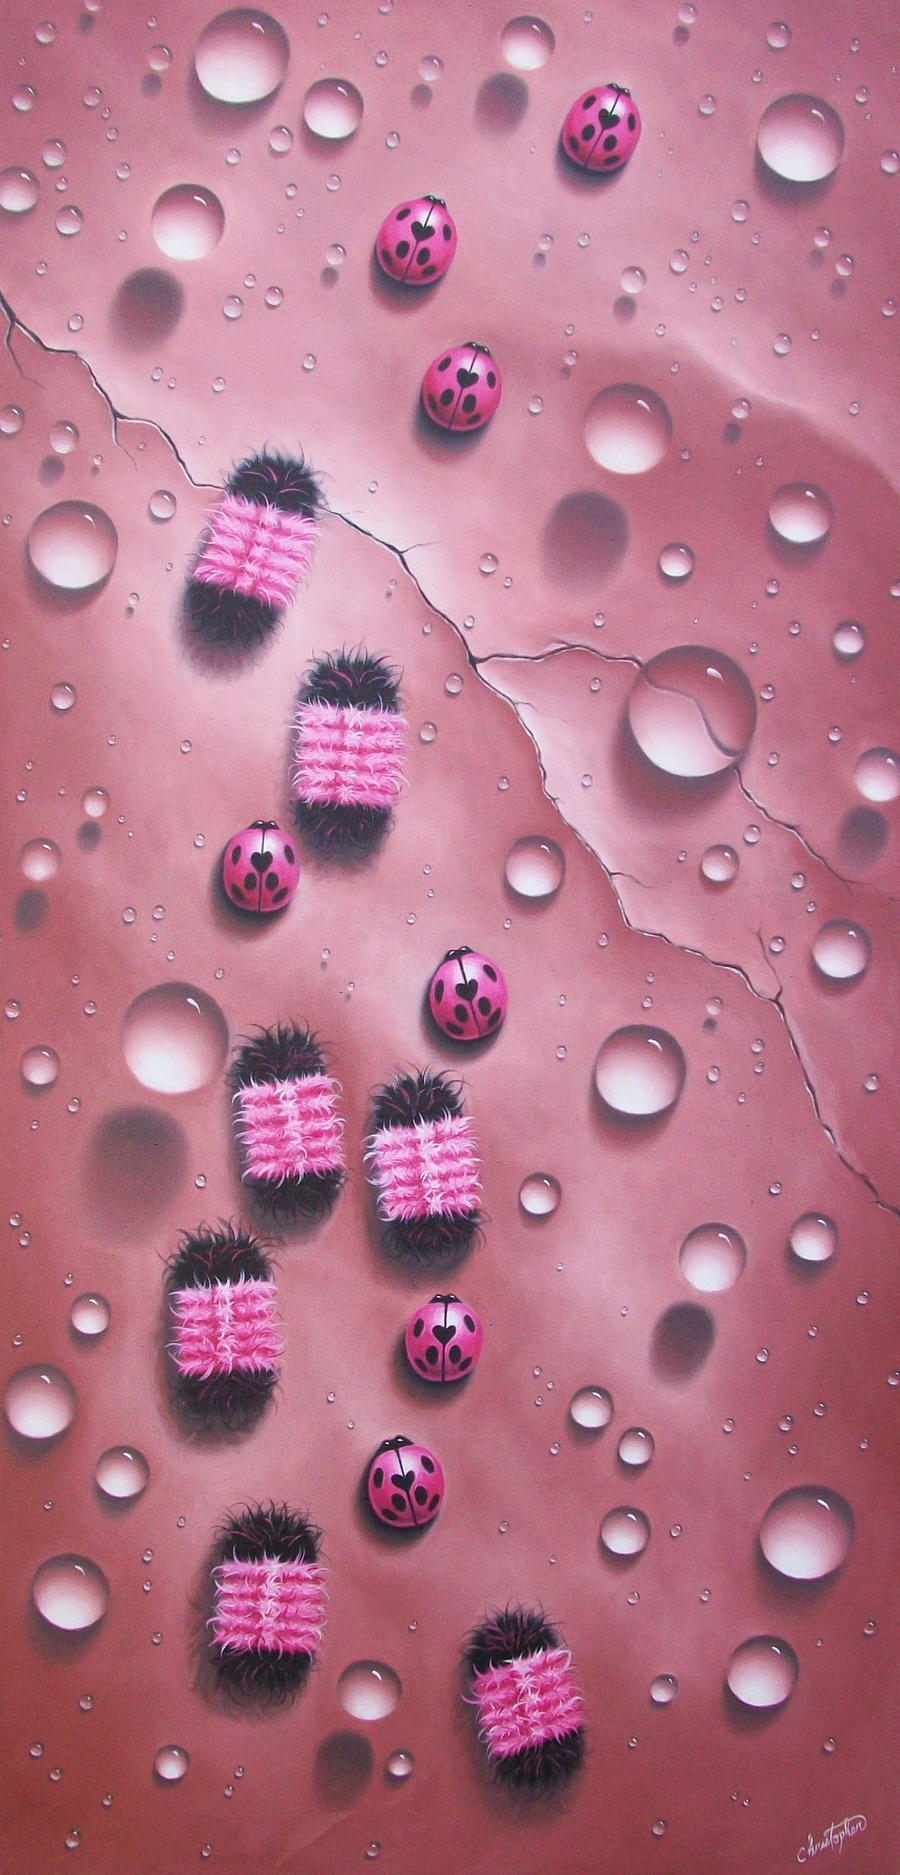 Pink Critters by ChristopherPollari